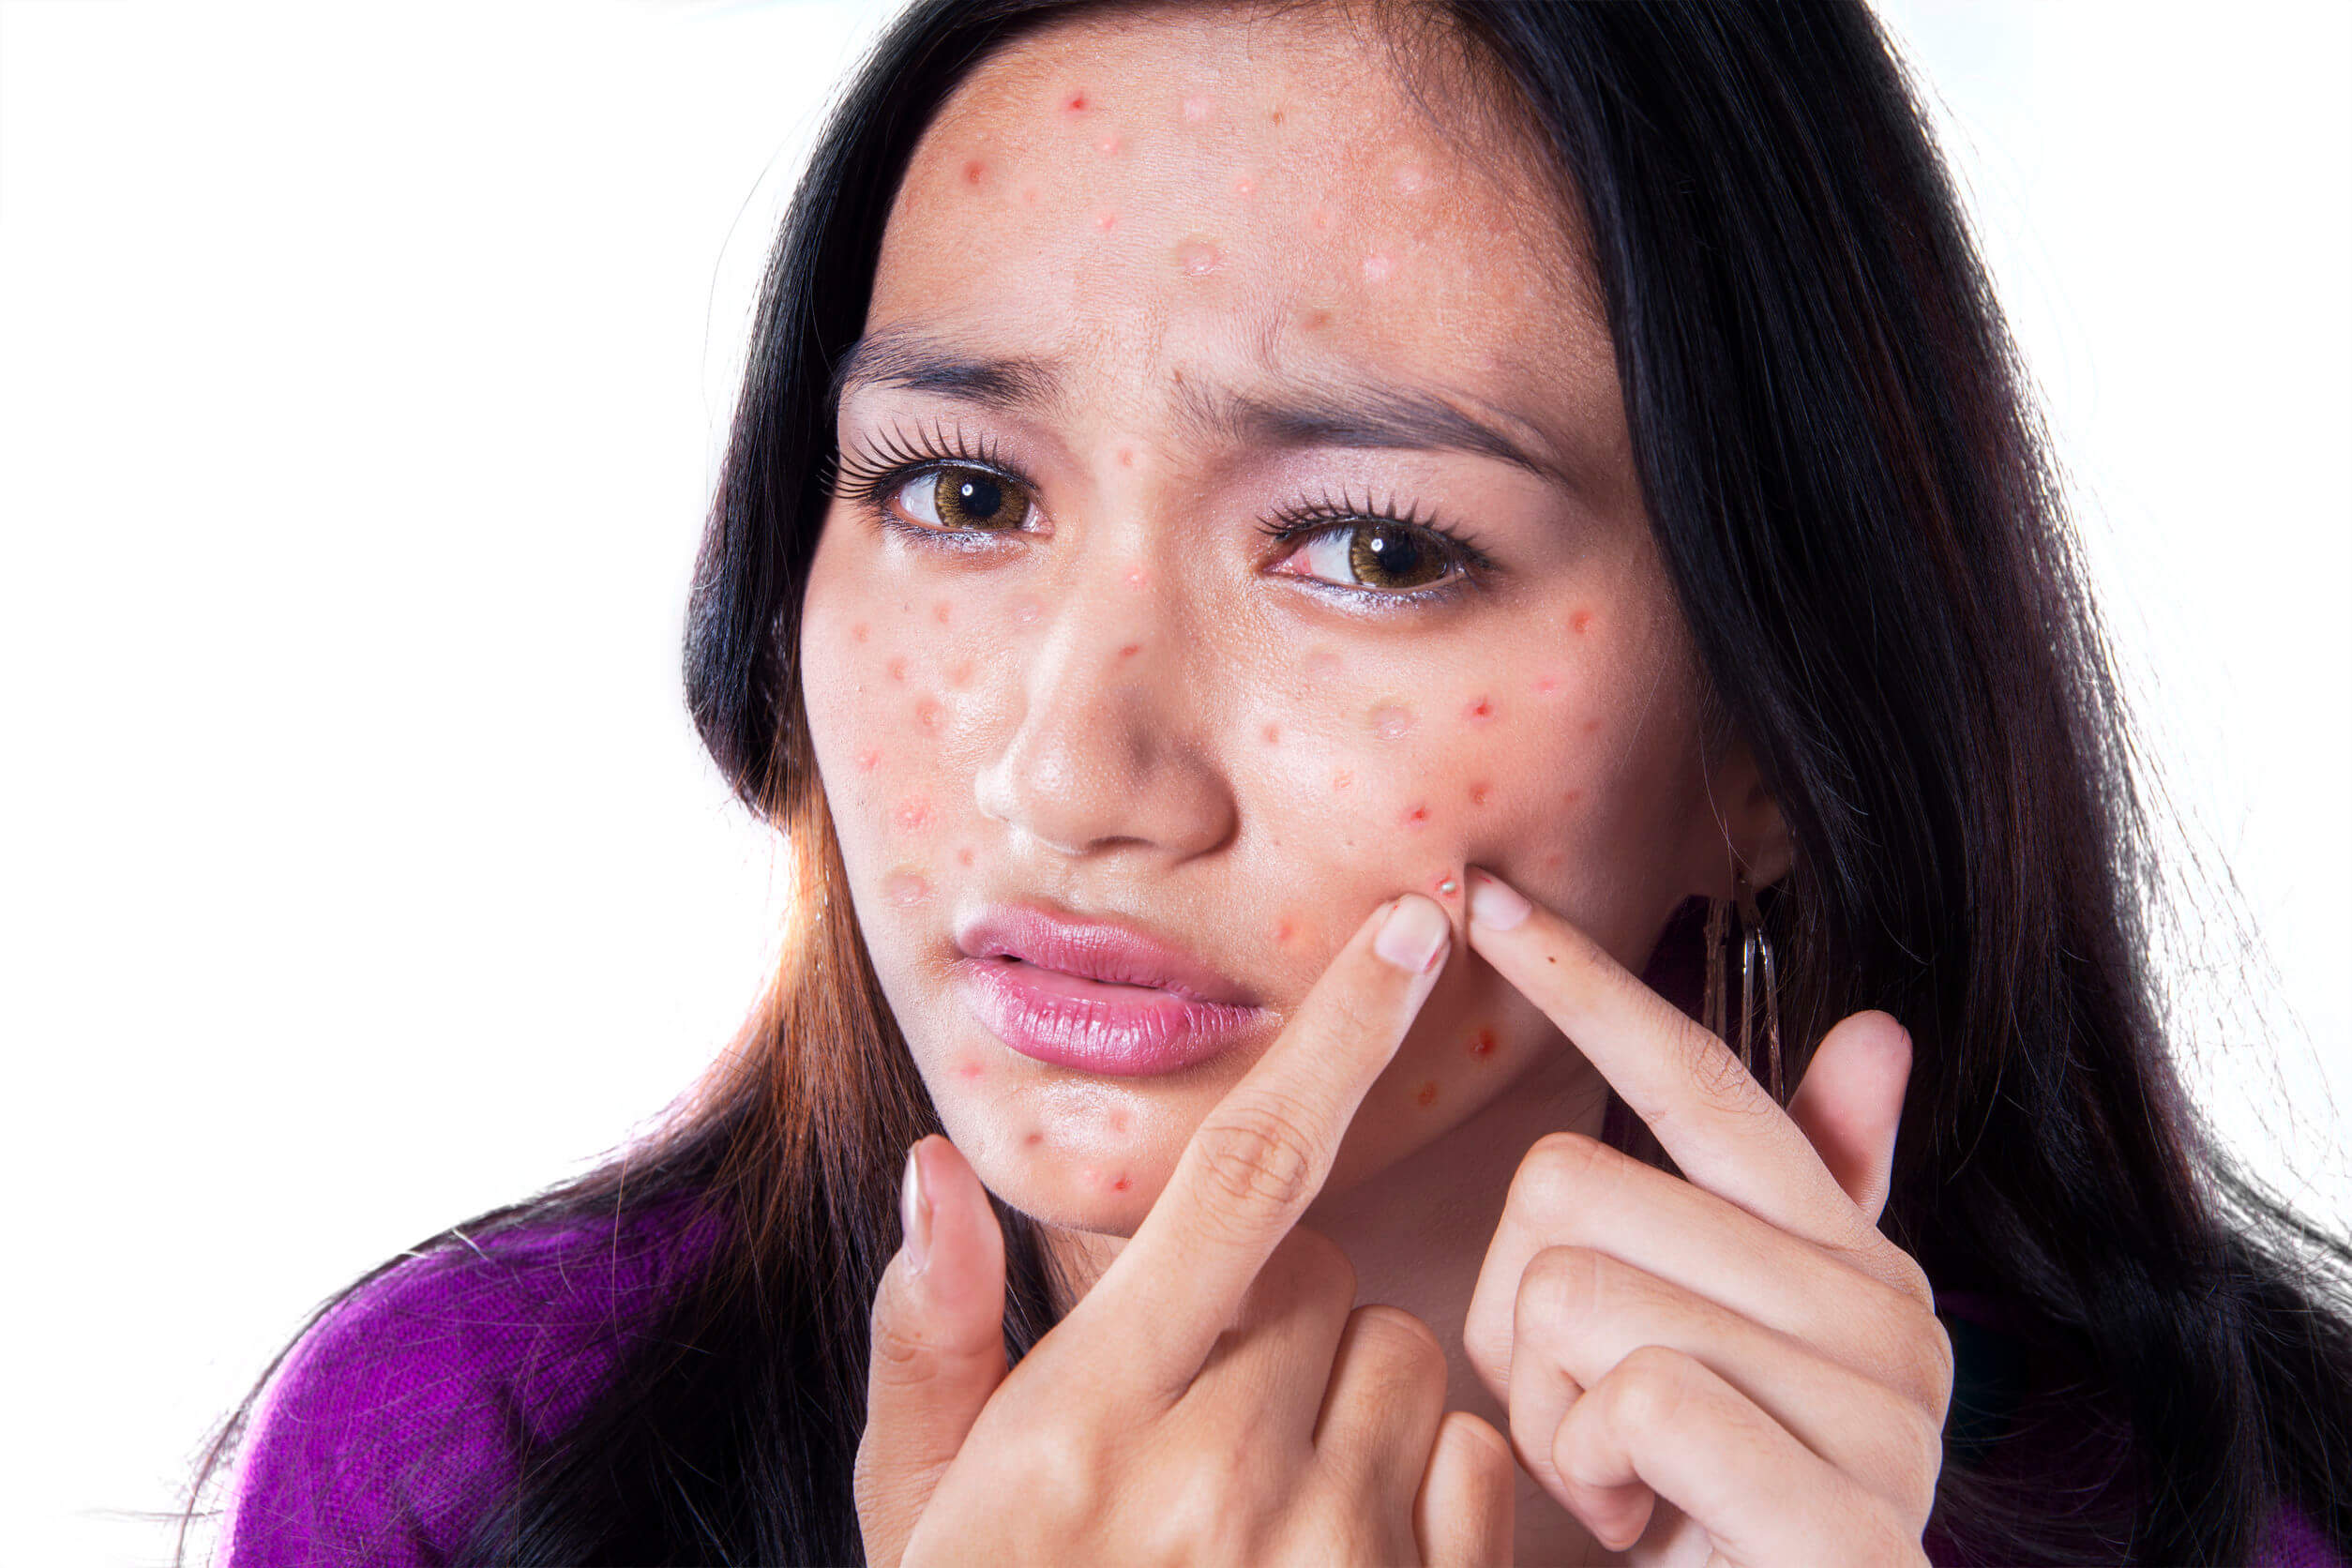 Pimples on the face can be very annoying.